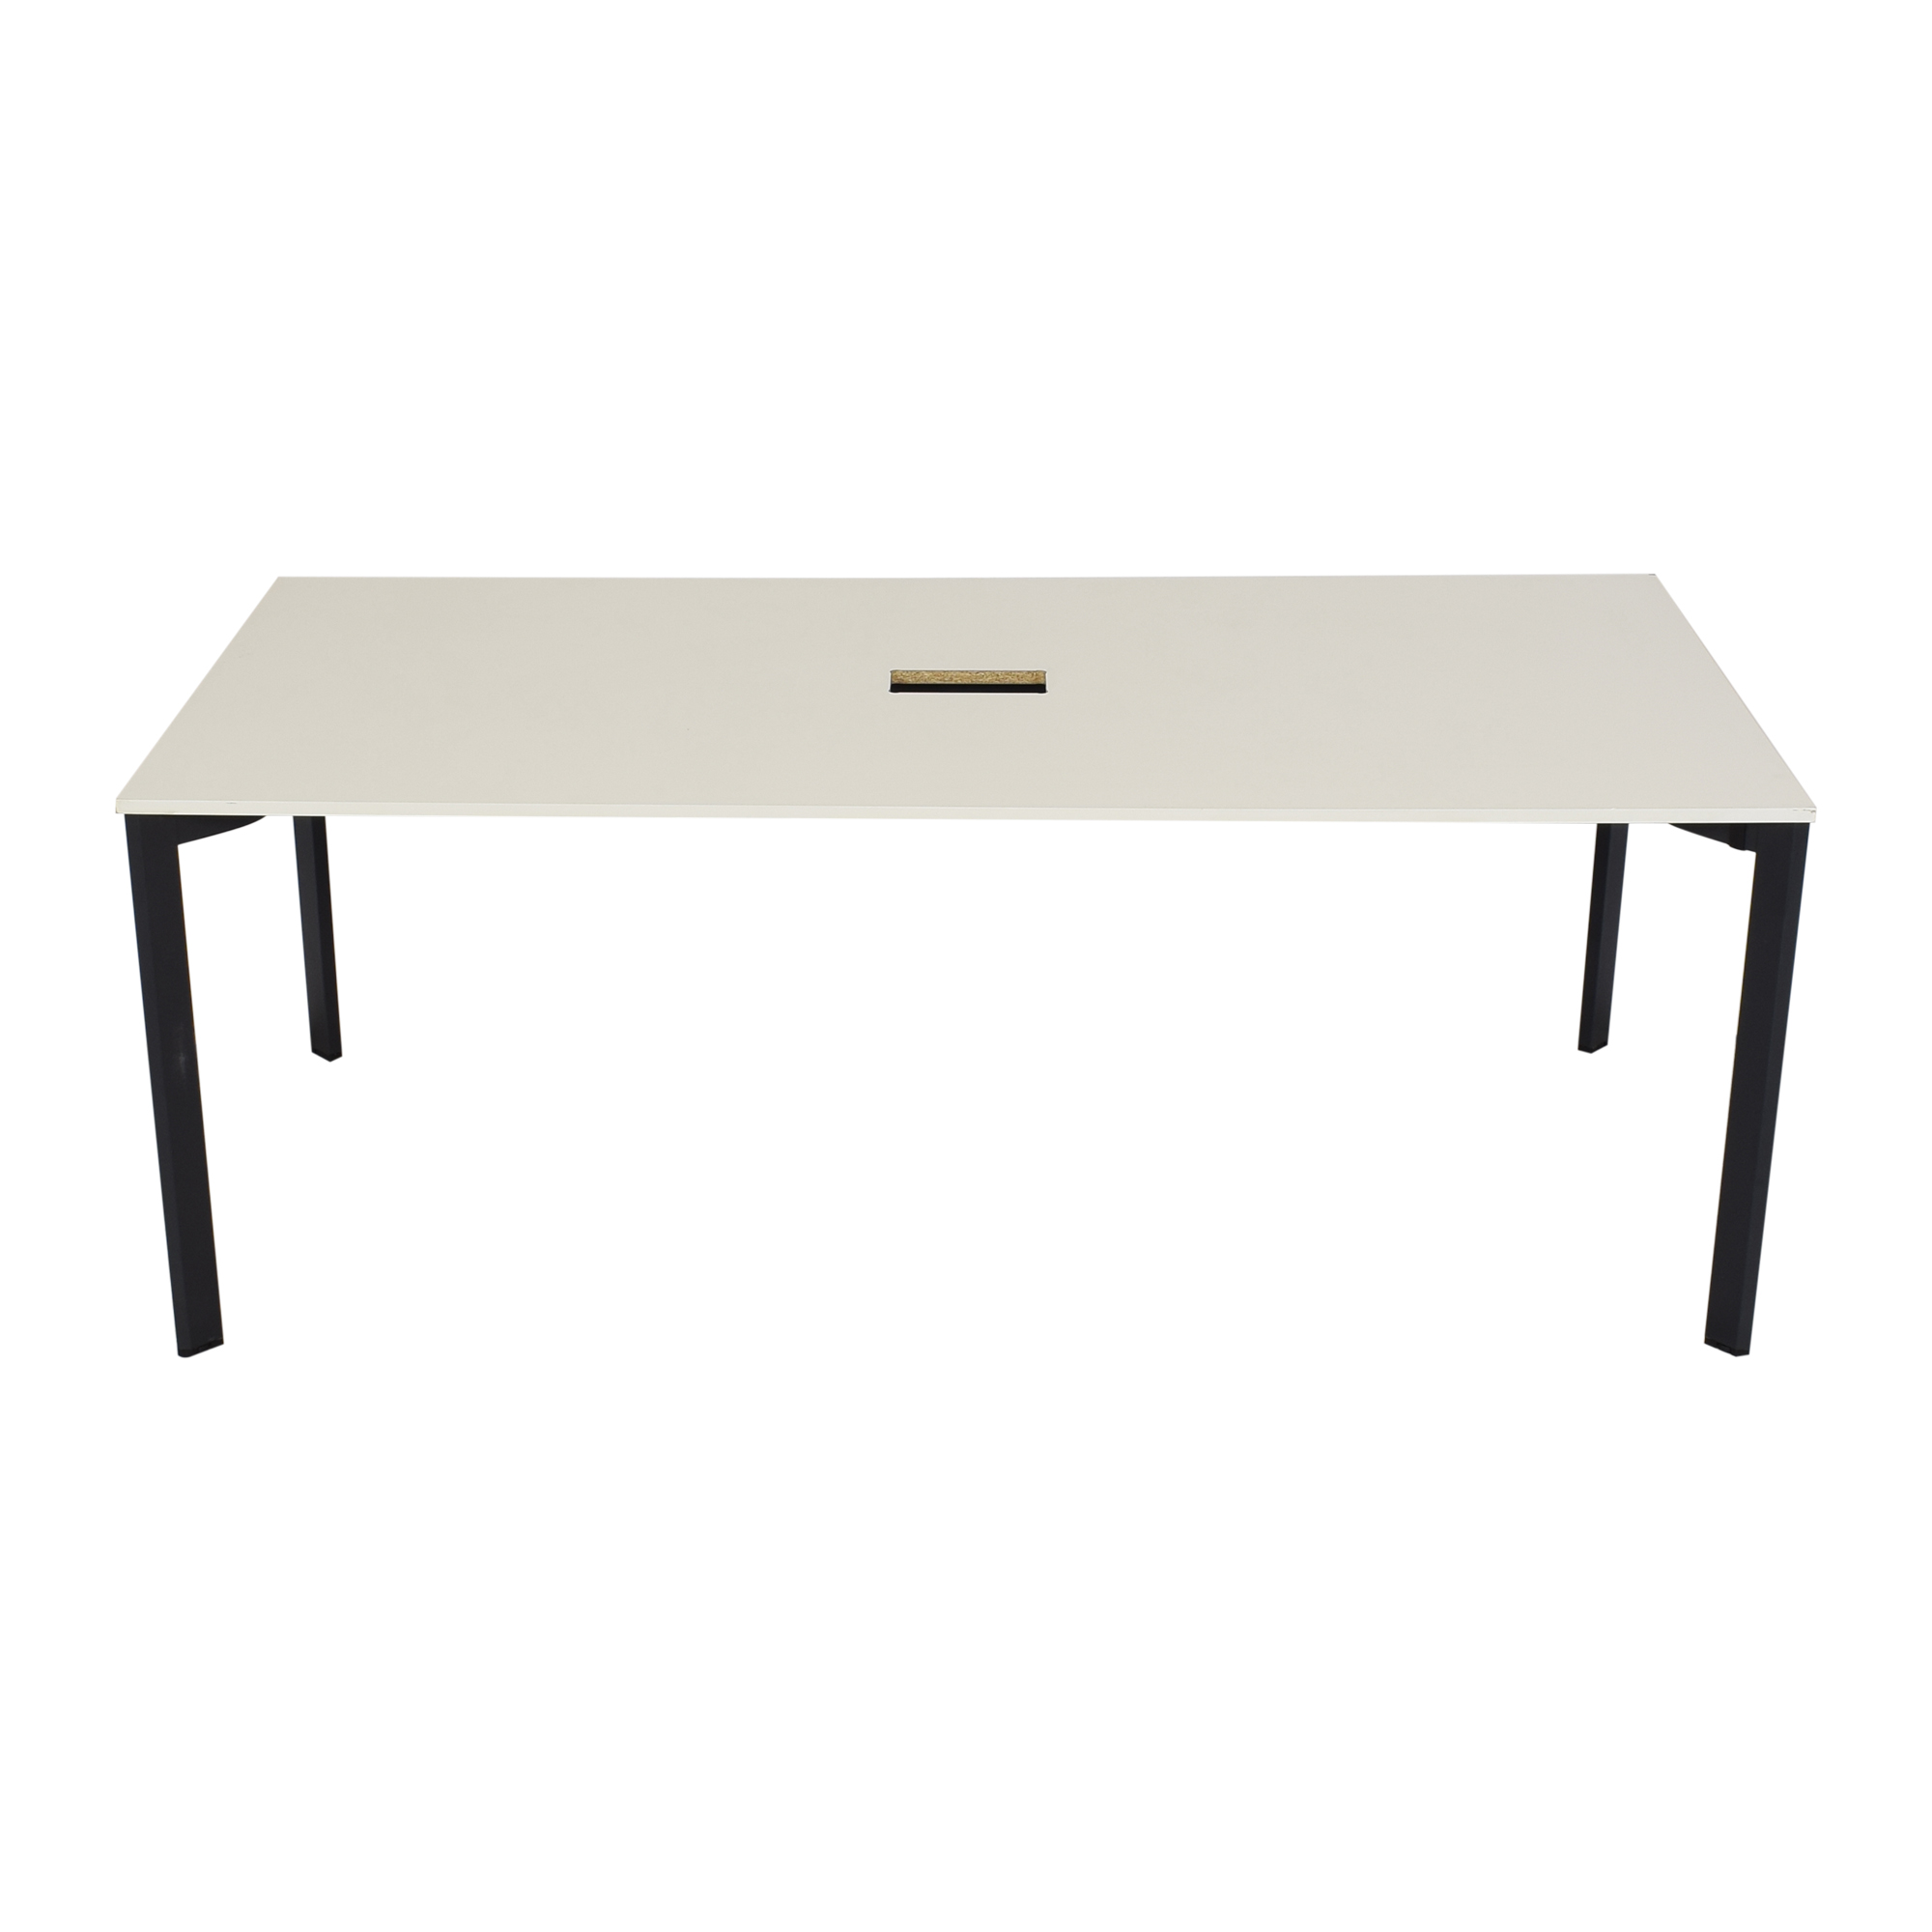 Koleksiyon Desk System Table / Tables